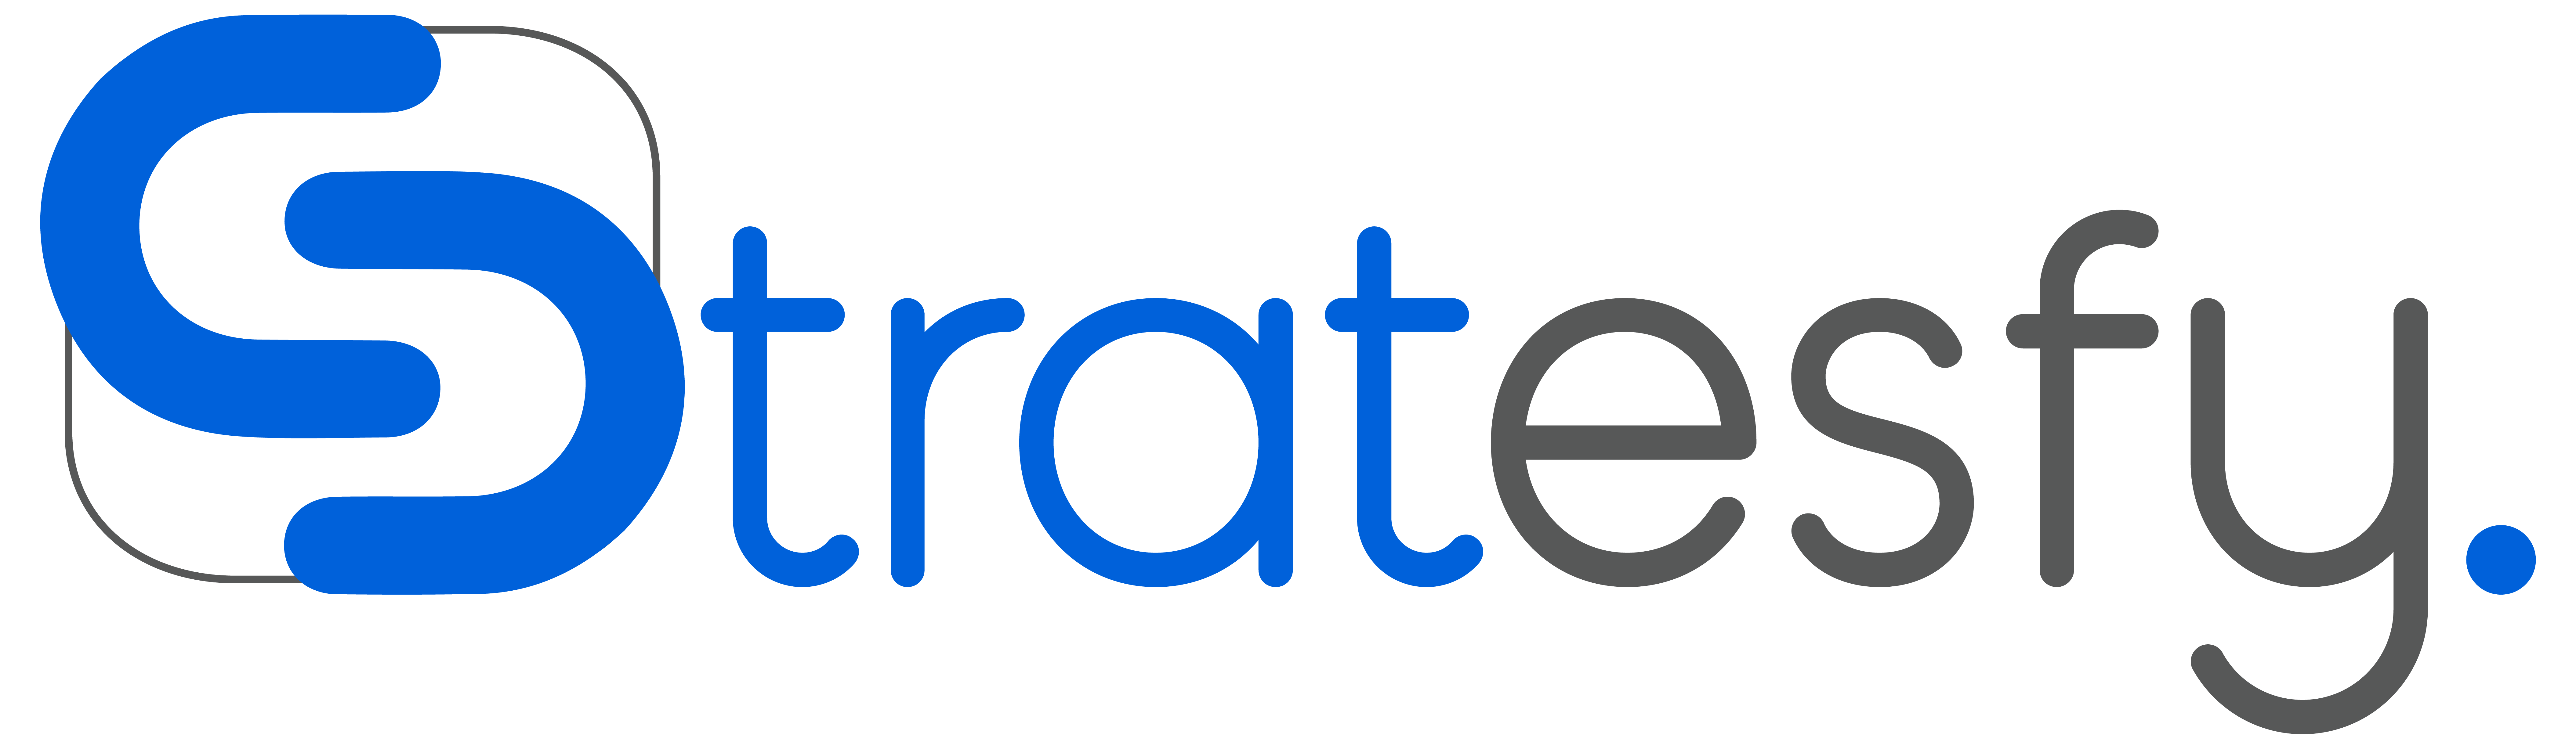 Stratesfy, Inc.